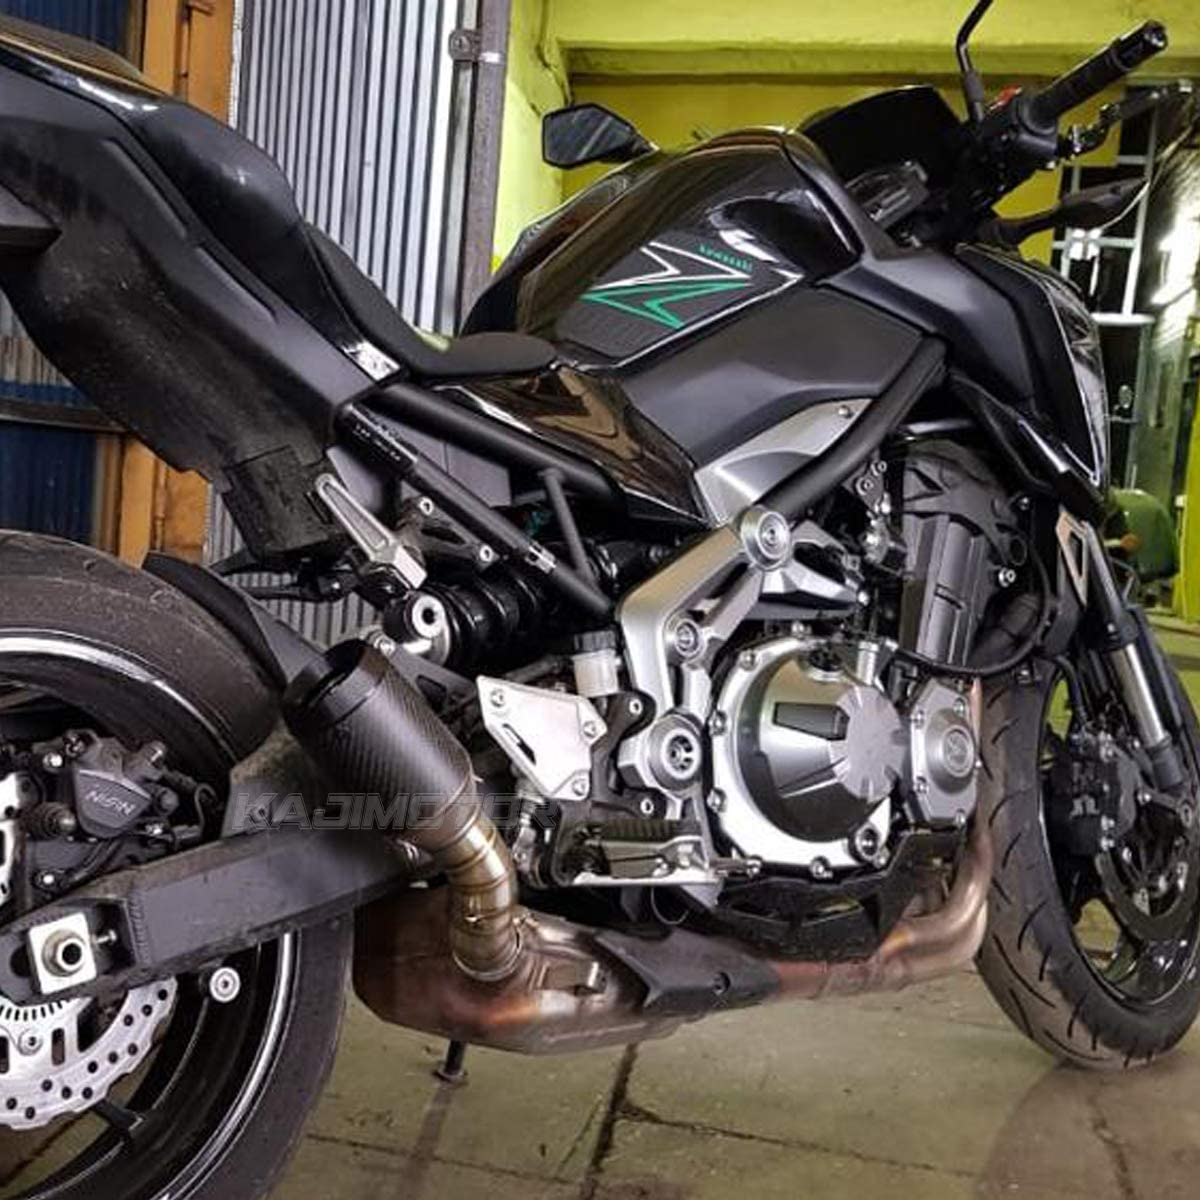 KAJIMOTOR Motorcycle Stainless 51mm// 2 Inlet Motorcycle Systerm Exhaust Muffler Tail Real Carbon Fiber Pipe For Kawasaki Z900 2017-2018